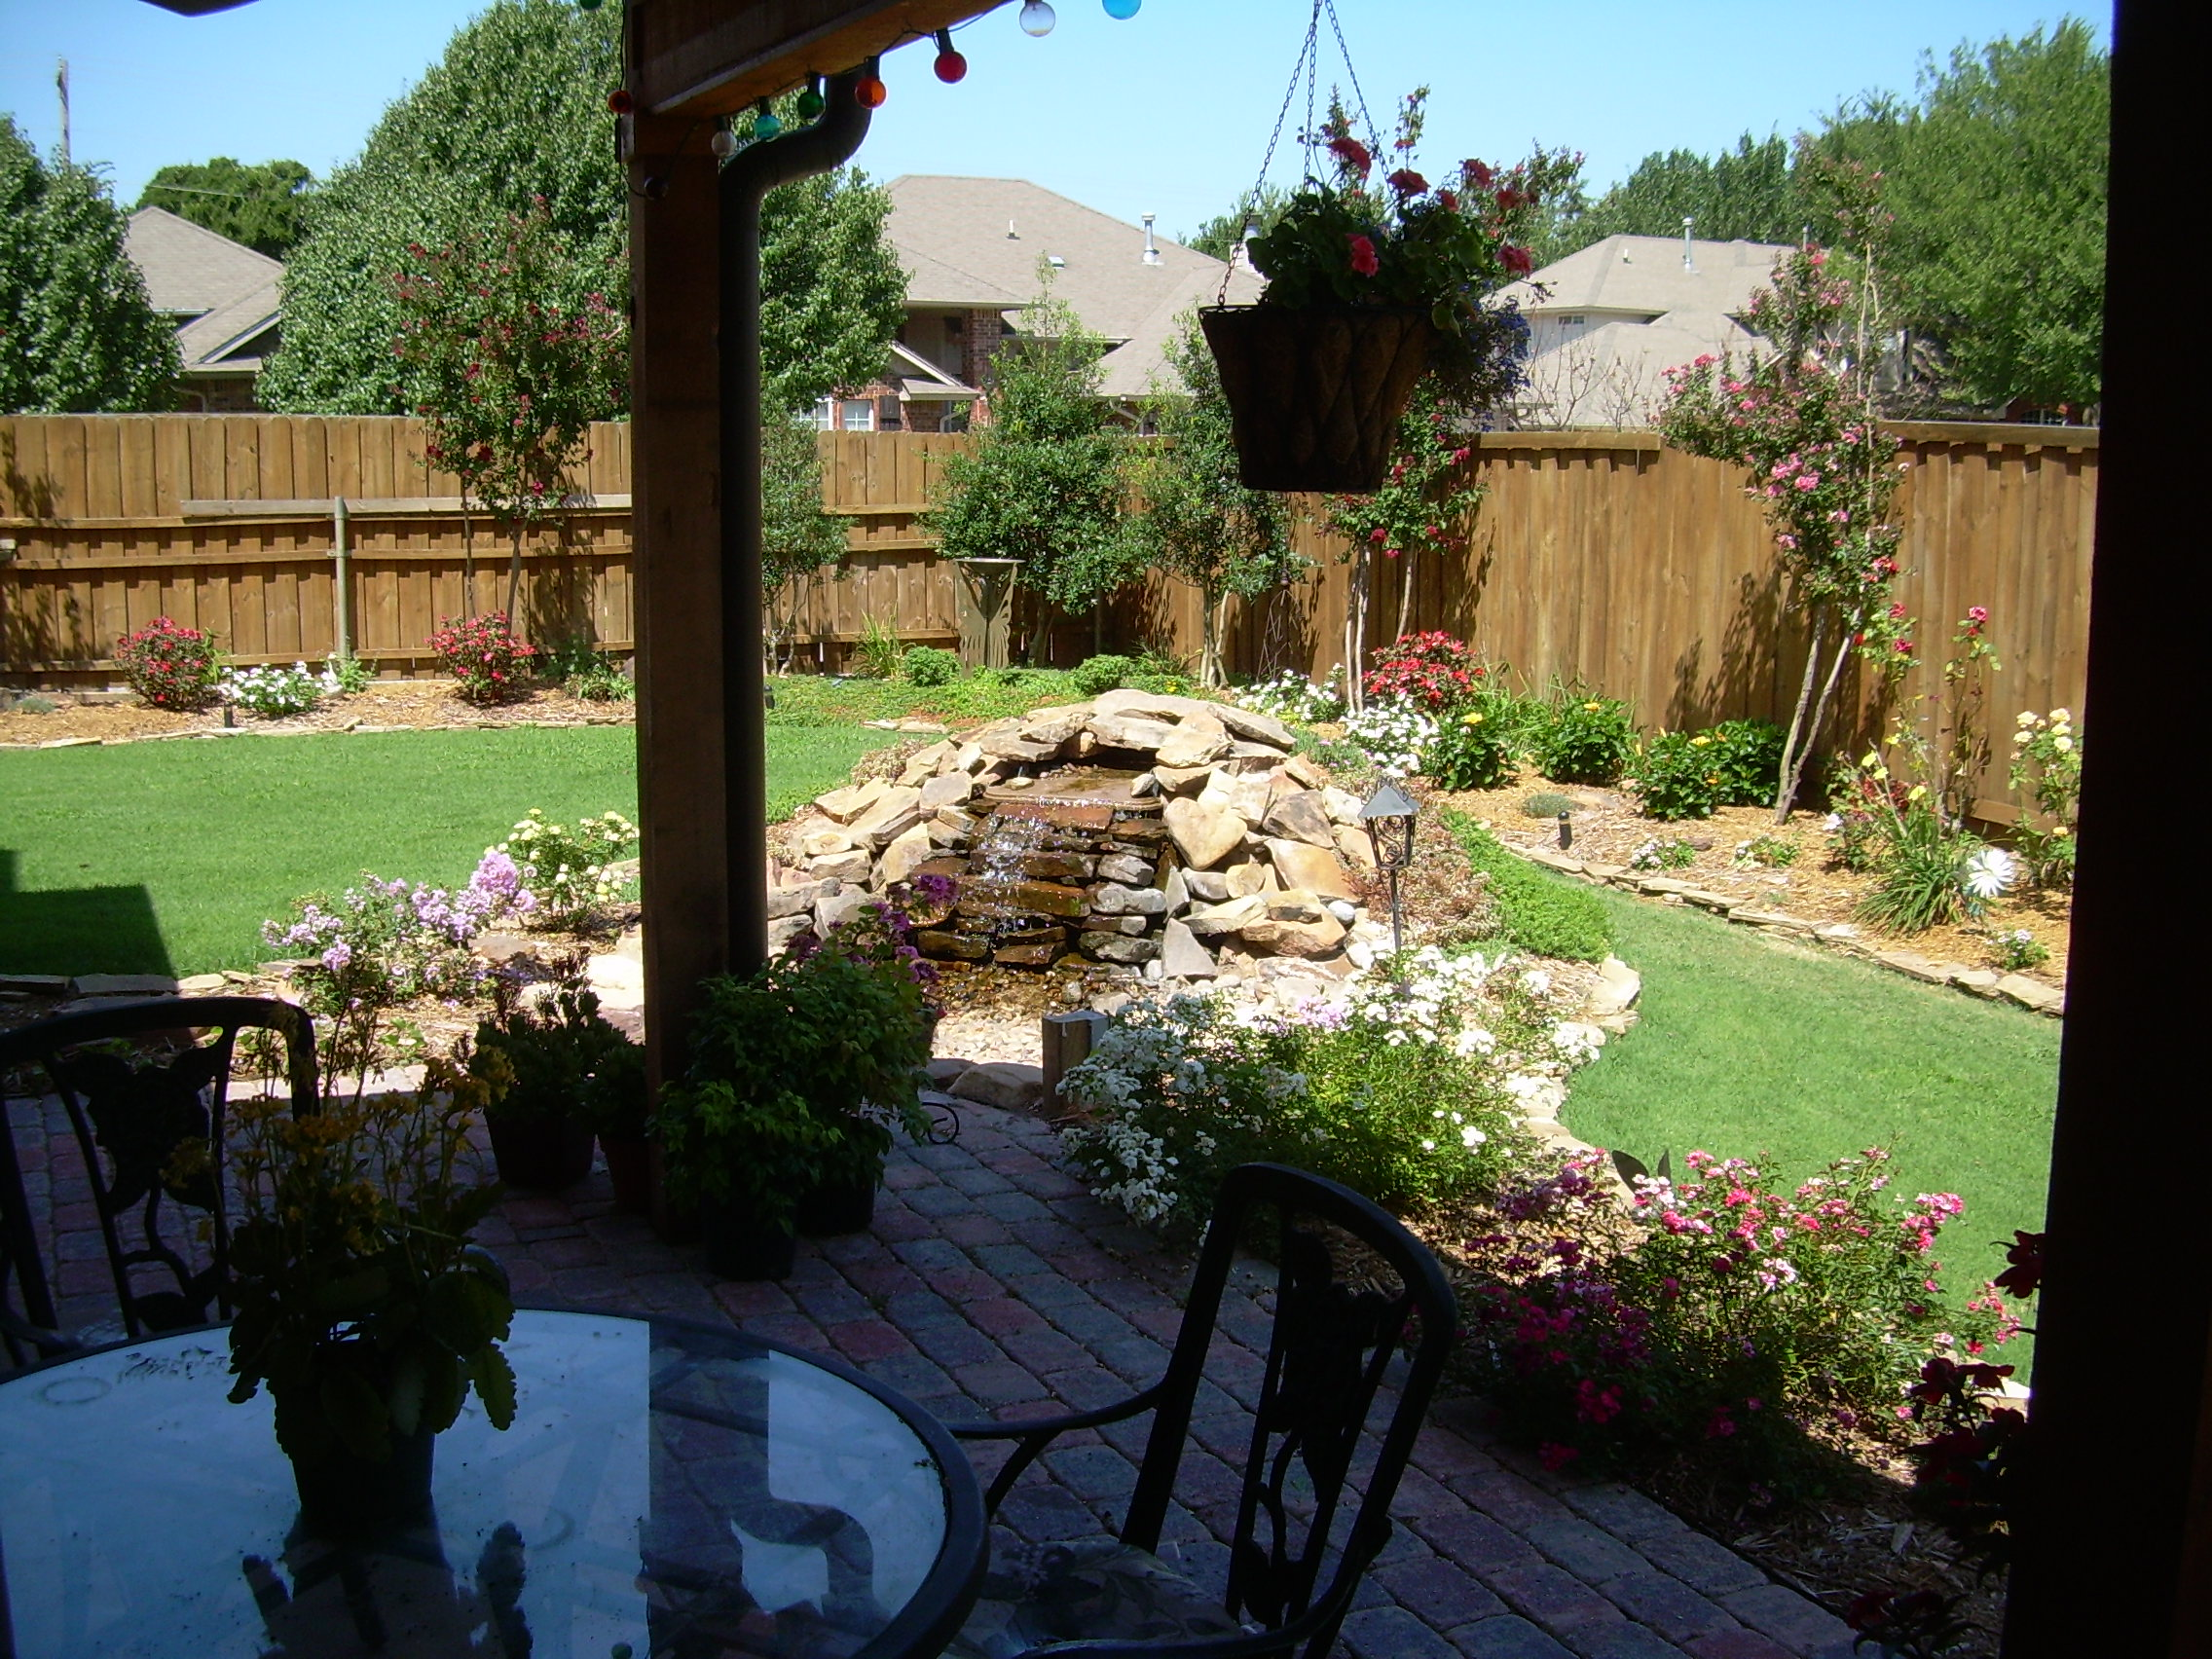 small-back-yard-landscaping-ideas-on-a-budget-20141106174223-545bb2ffb63be